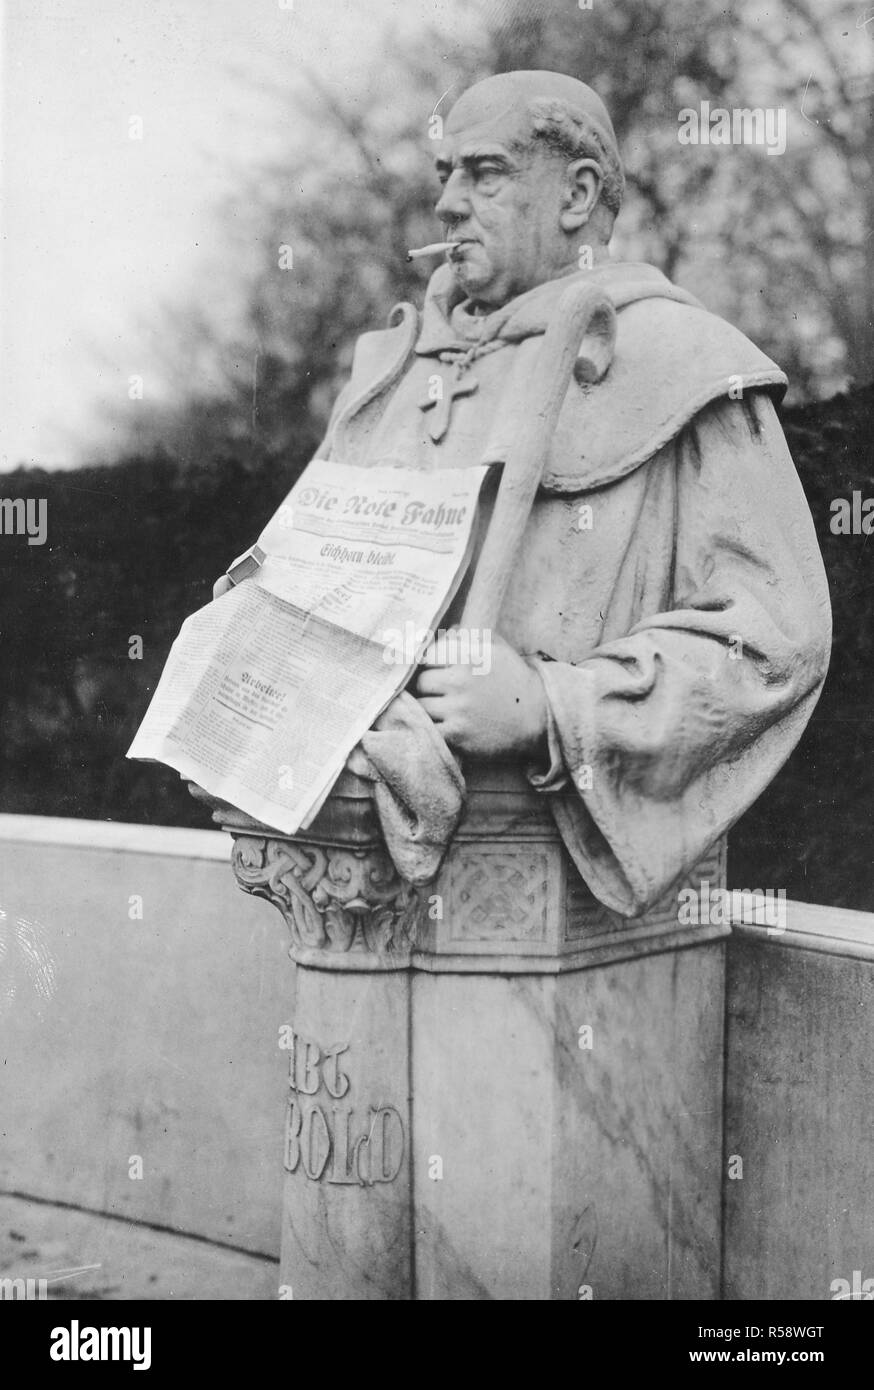 German Revolution - This statue one of hundreds on the Sieges Alle, representing the German rulers for 1,000 years, is decorated by a good natured Bolshevist, who put a cigarette in the statue's mouth, and official organ of the Spartacus, Red Flag in his had ca. 1918-1919 - Stock Image